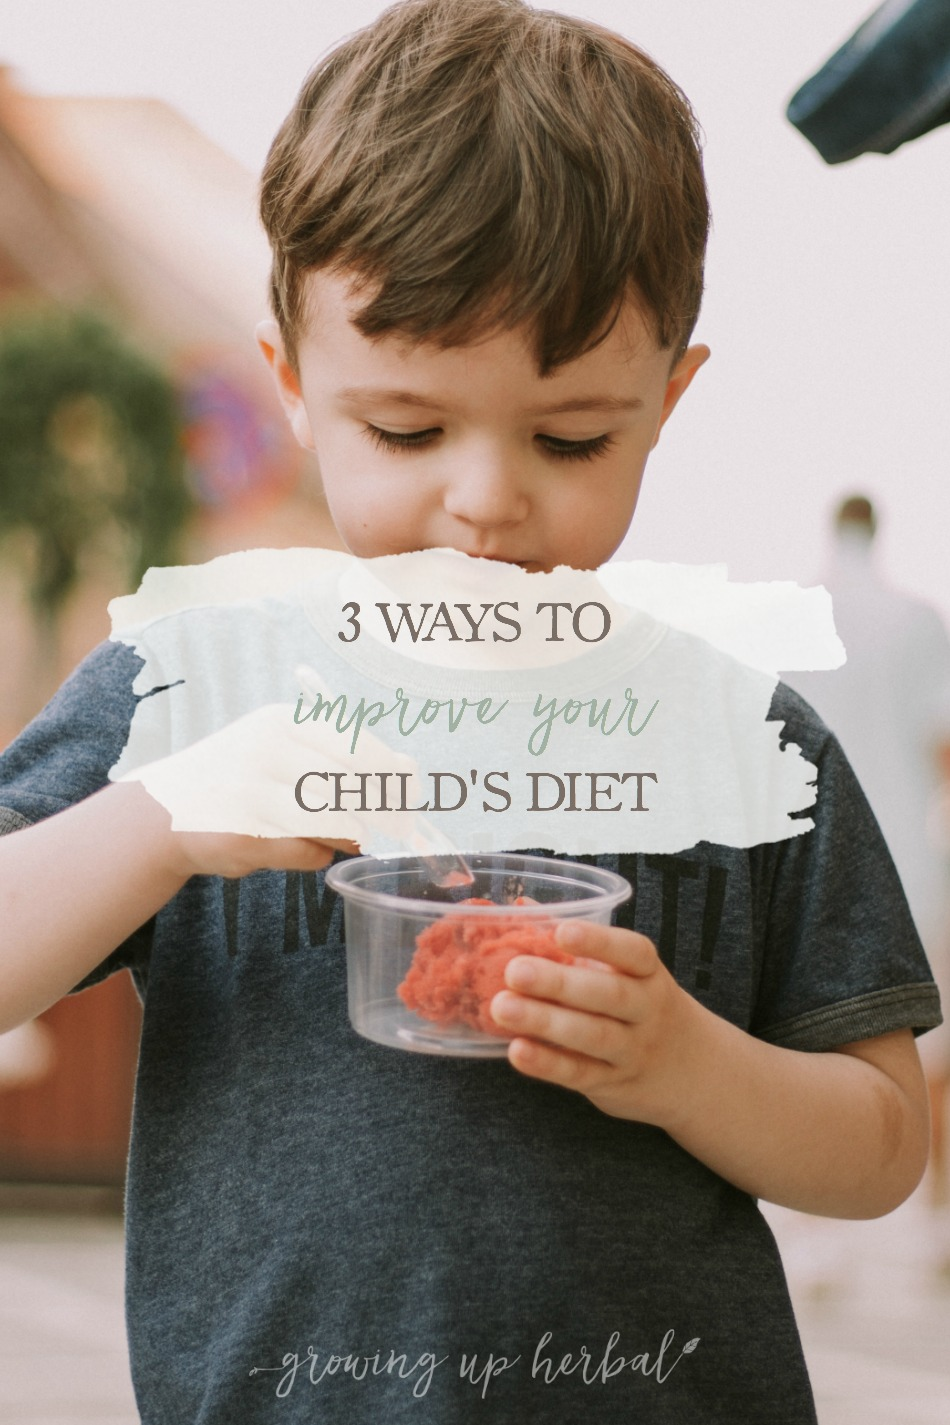 Nutrition For Kids: 3 Ways To Improve Your Child's Diet | Growing Up Herbal | Here are 3 steps to improve your child's diet.